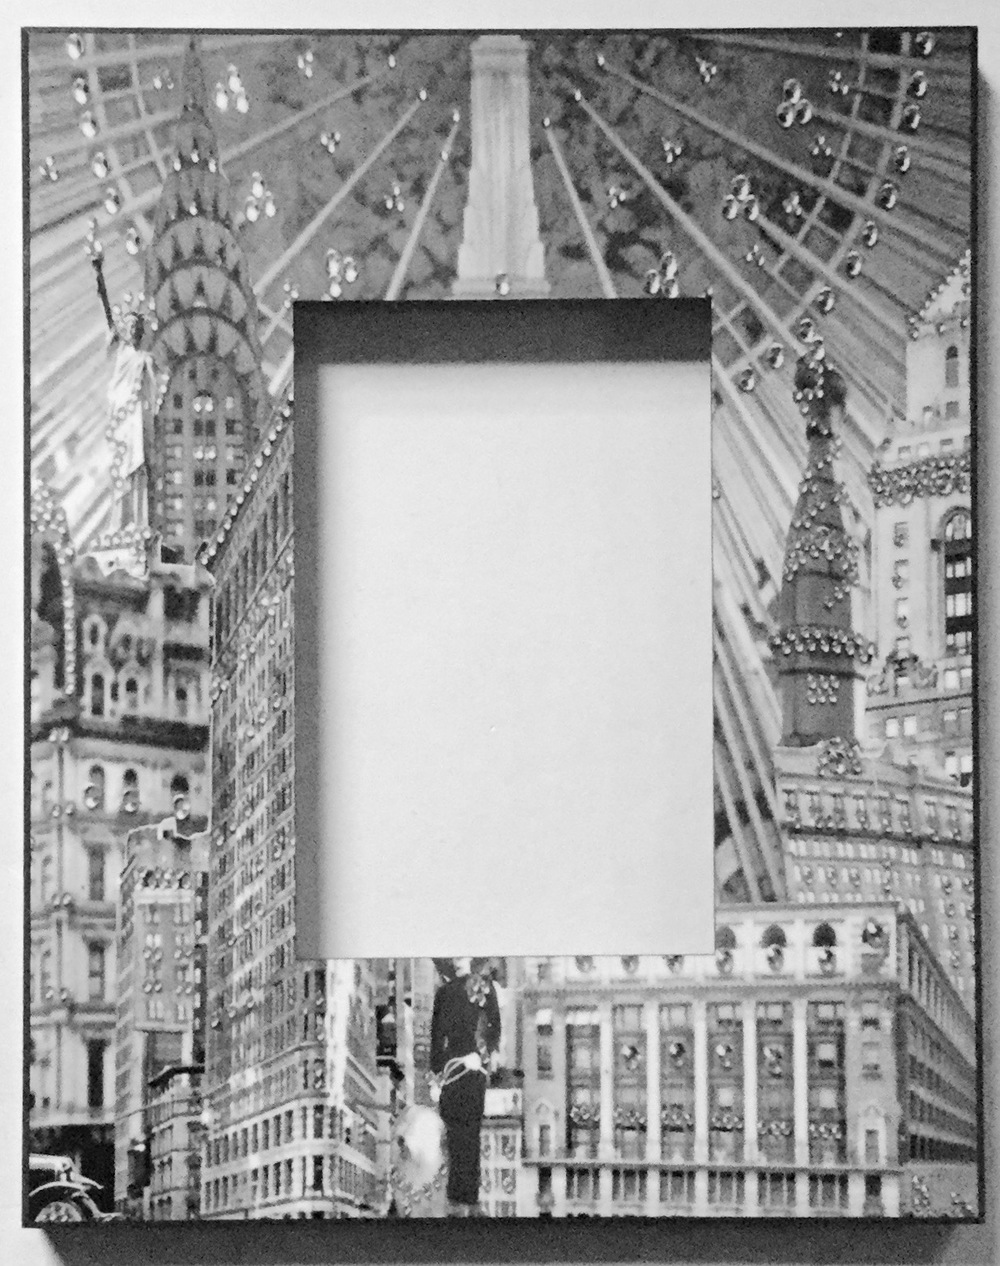 Empire State printed Frame 4x6 $65